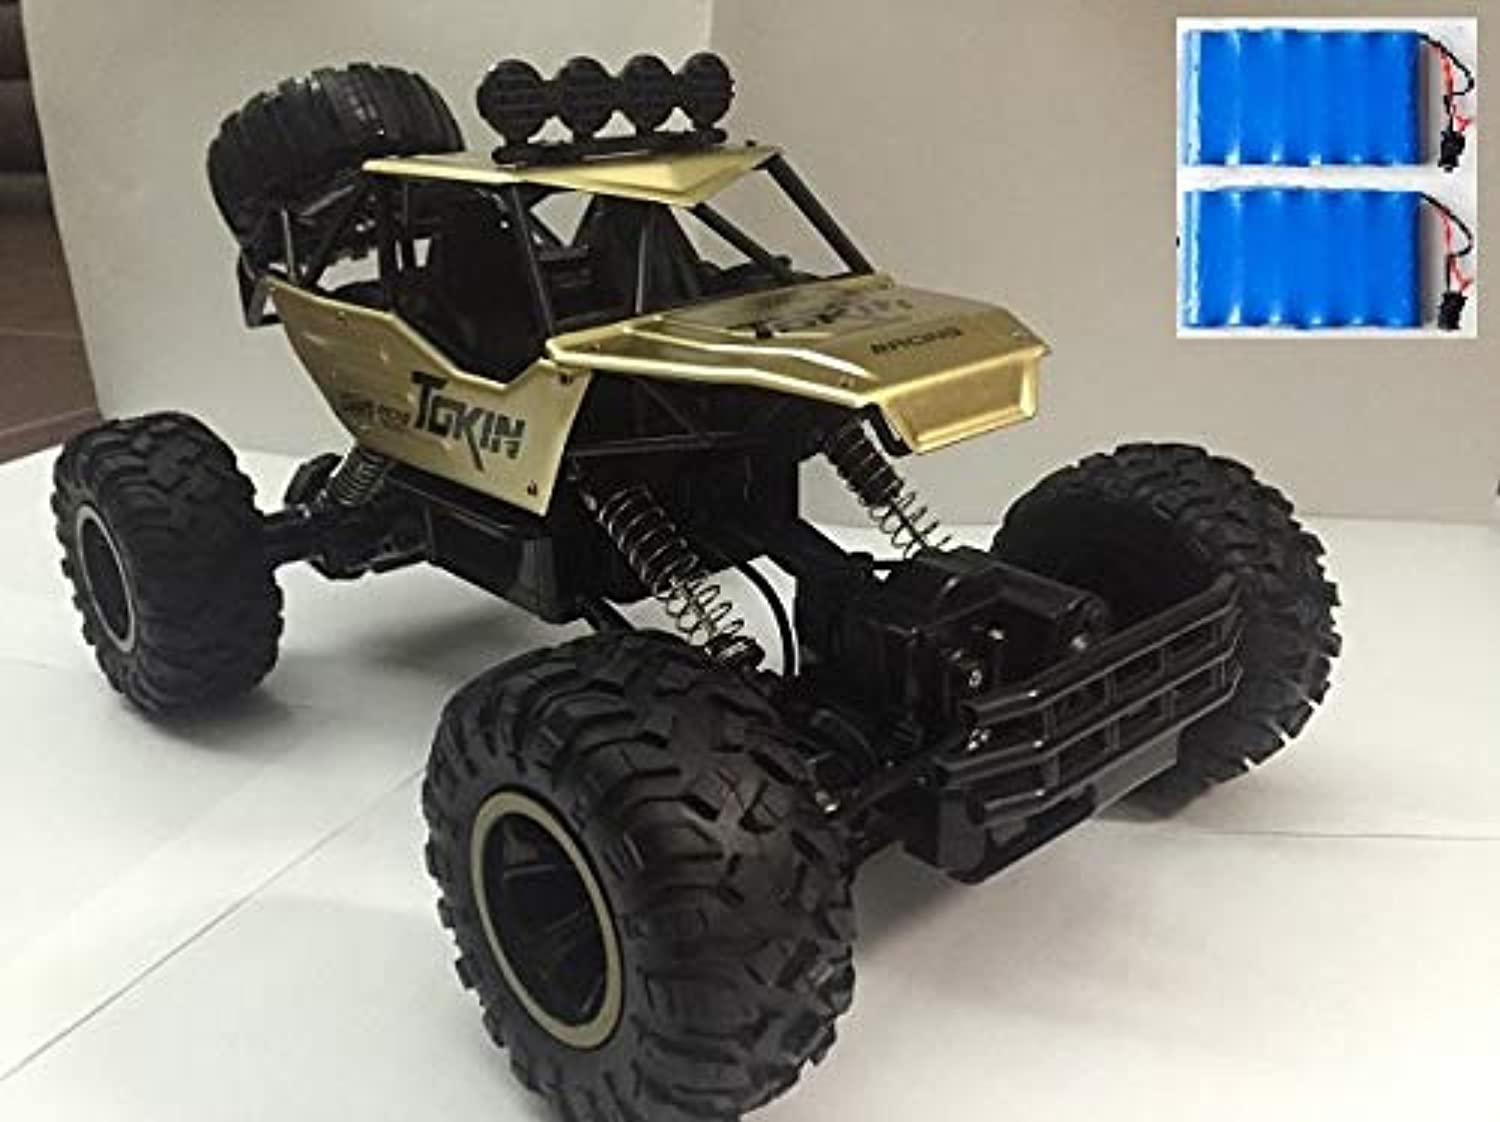 Generic 1 12 RC Car 4WD Climbing Car 4x4 Double Motors Drive Bigfoot Car Remote Control Model OffRoad Vehicle oys for Boys Kids 37cm 2 Battery Brown